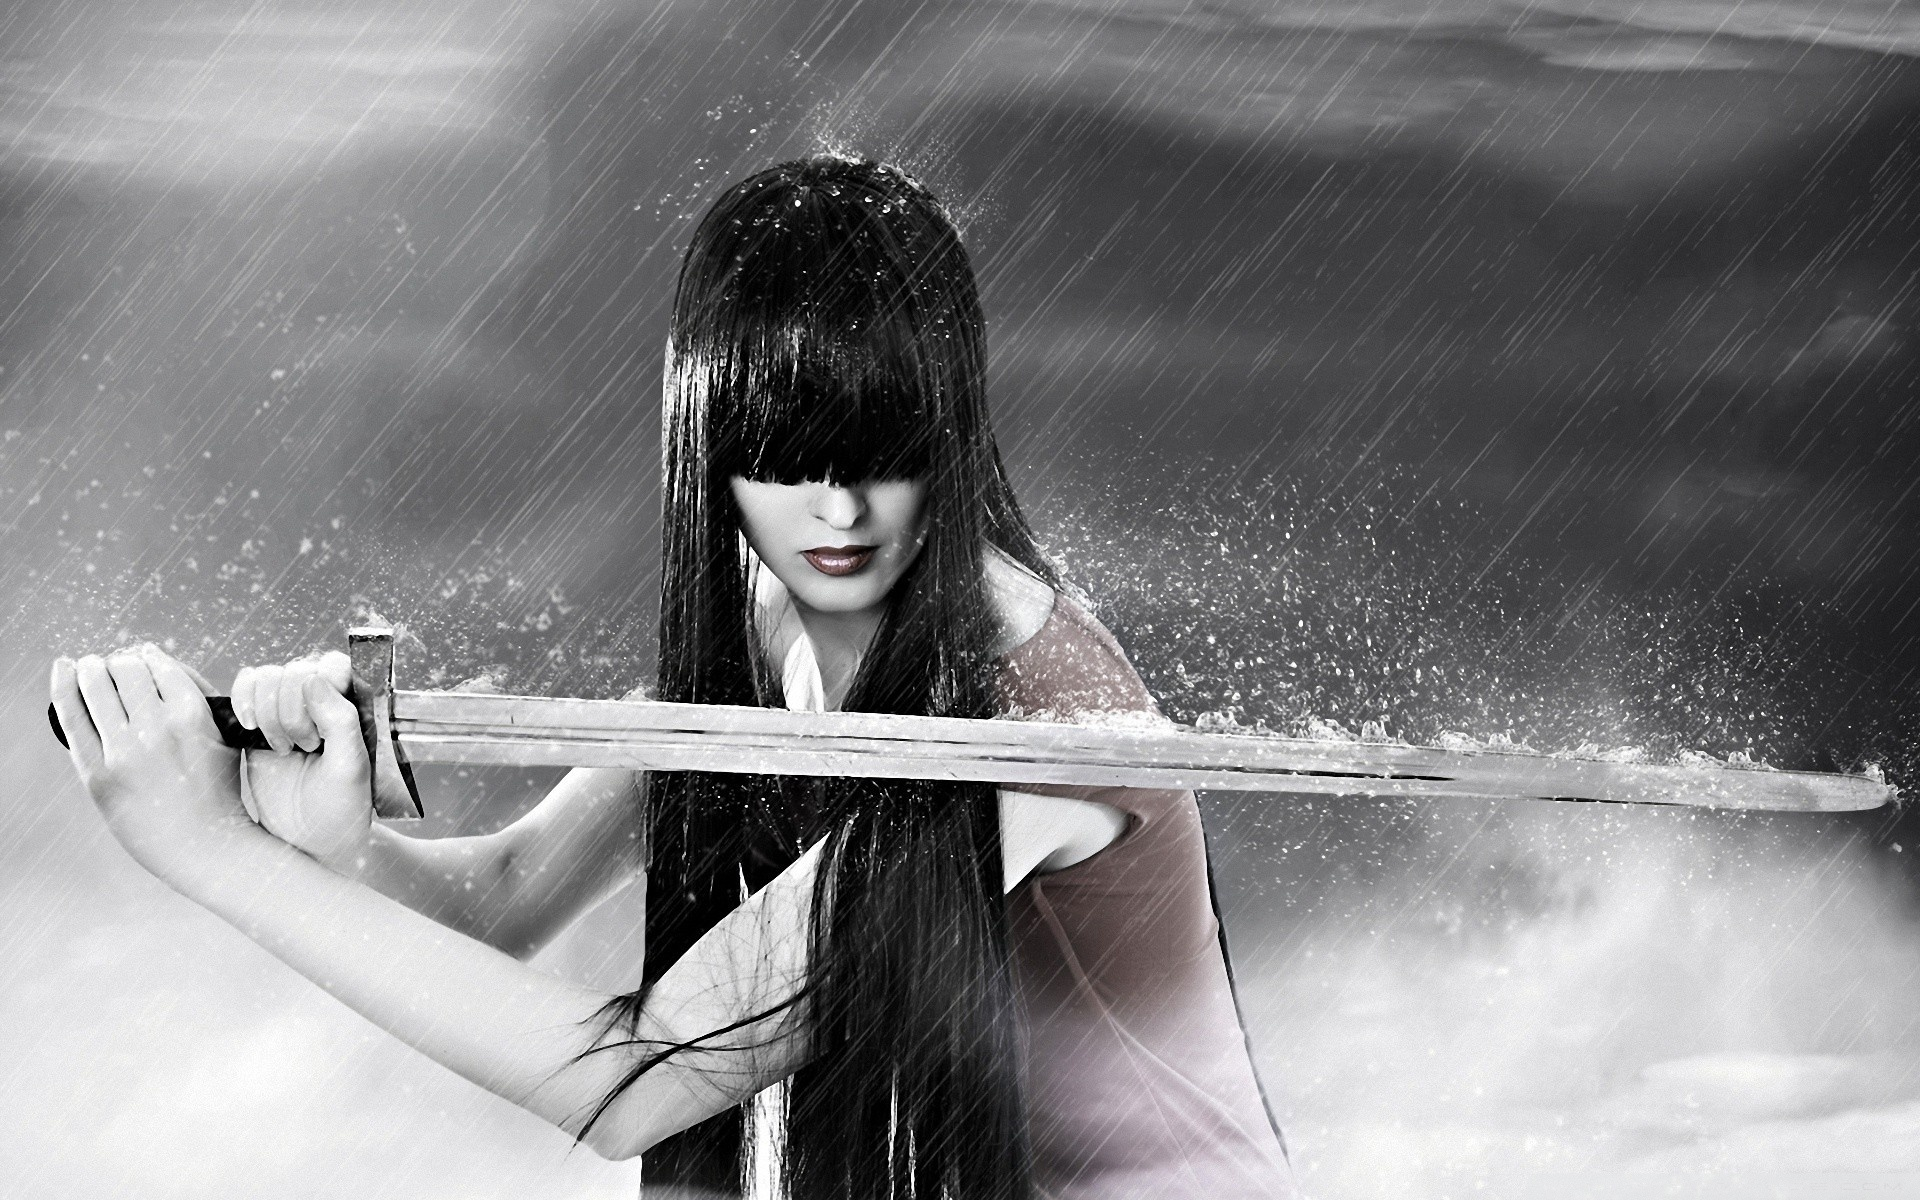 click to free download the wallpaper--Cool Girls Picture, Beautiful Girl in Sword, Long Black Hair Covering Her Eyes, Heavy Rain 1920X1200 free wallpaper download